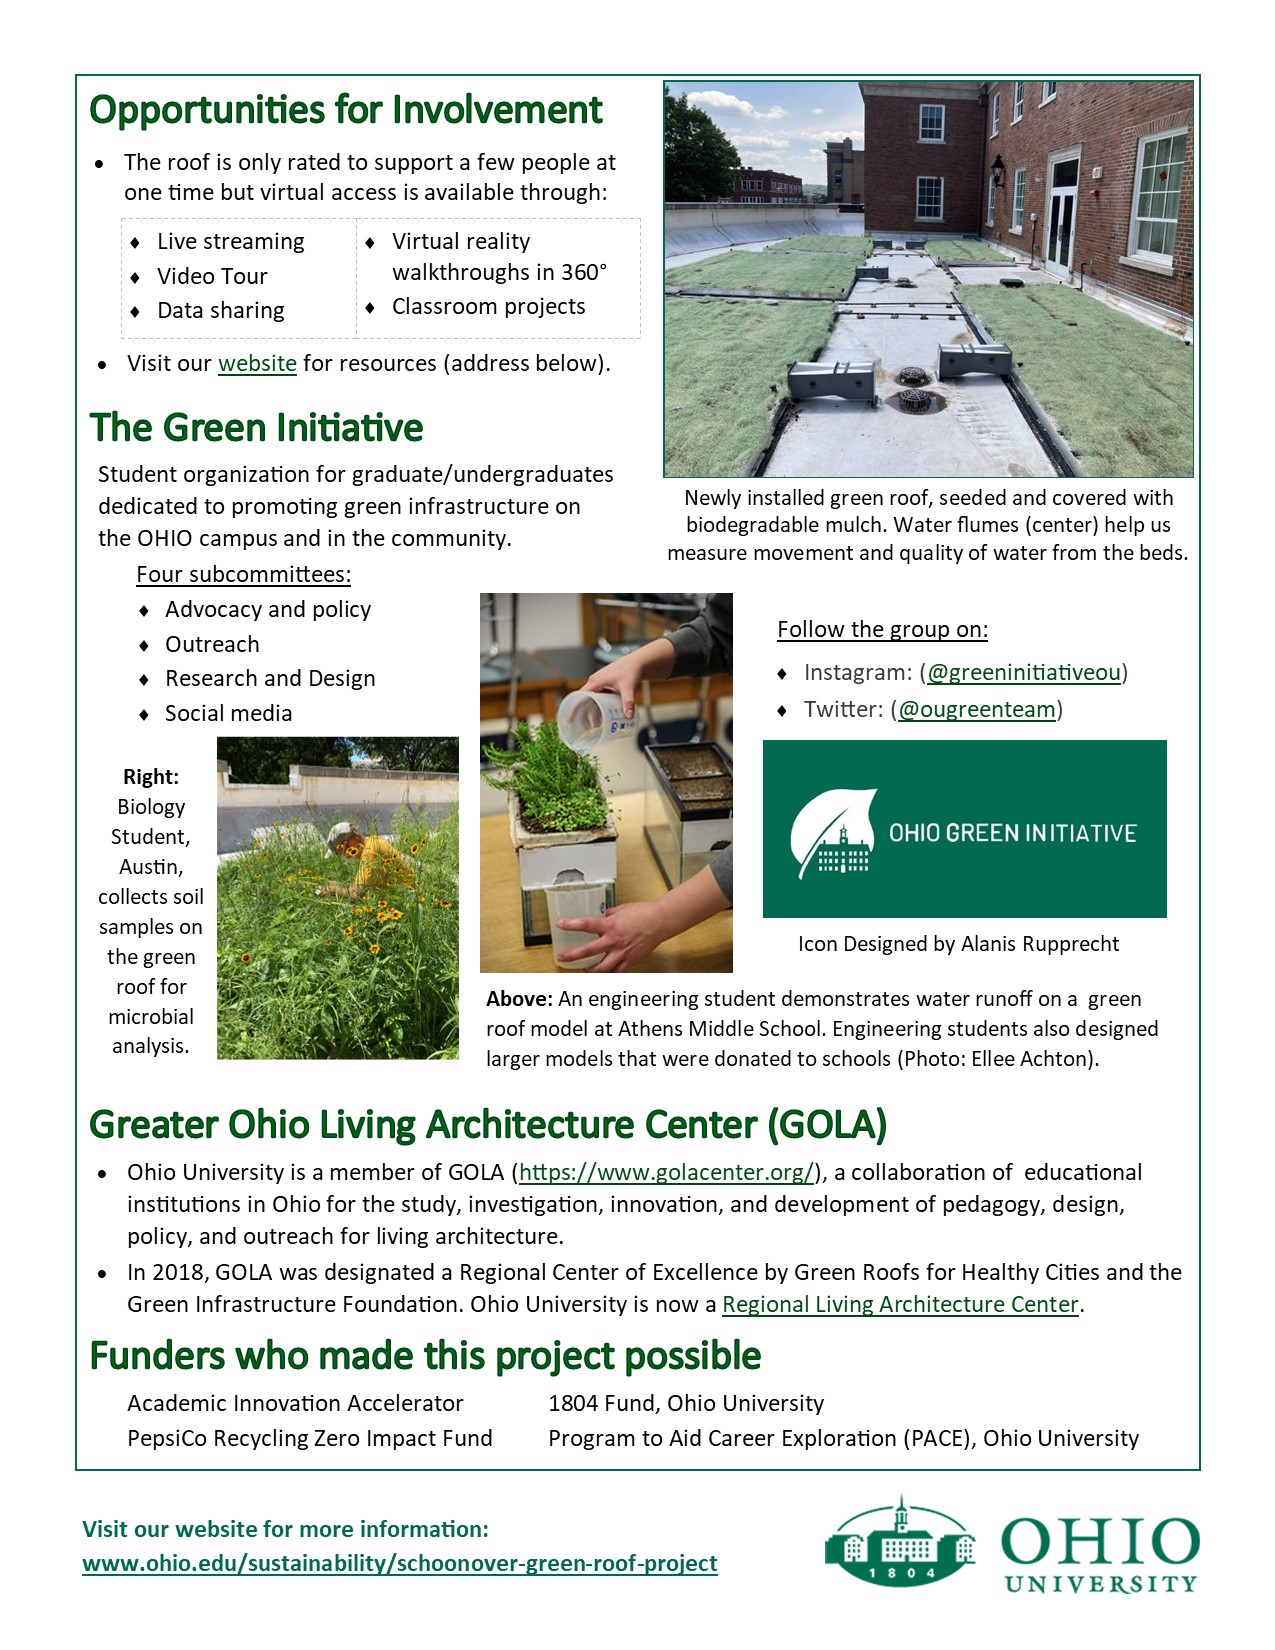 Flyer describing a green roof on Schoonover Center p.2